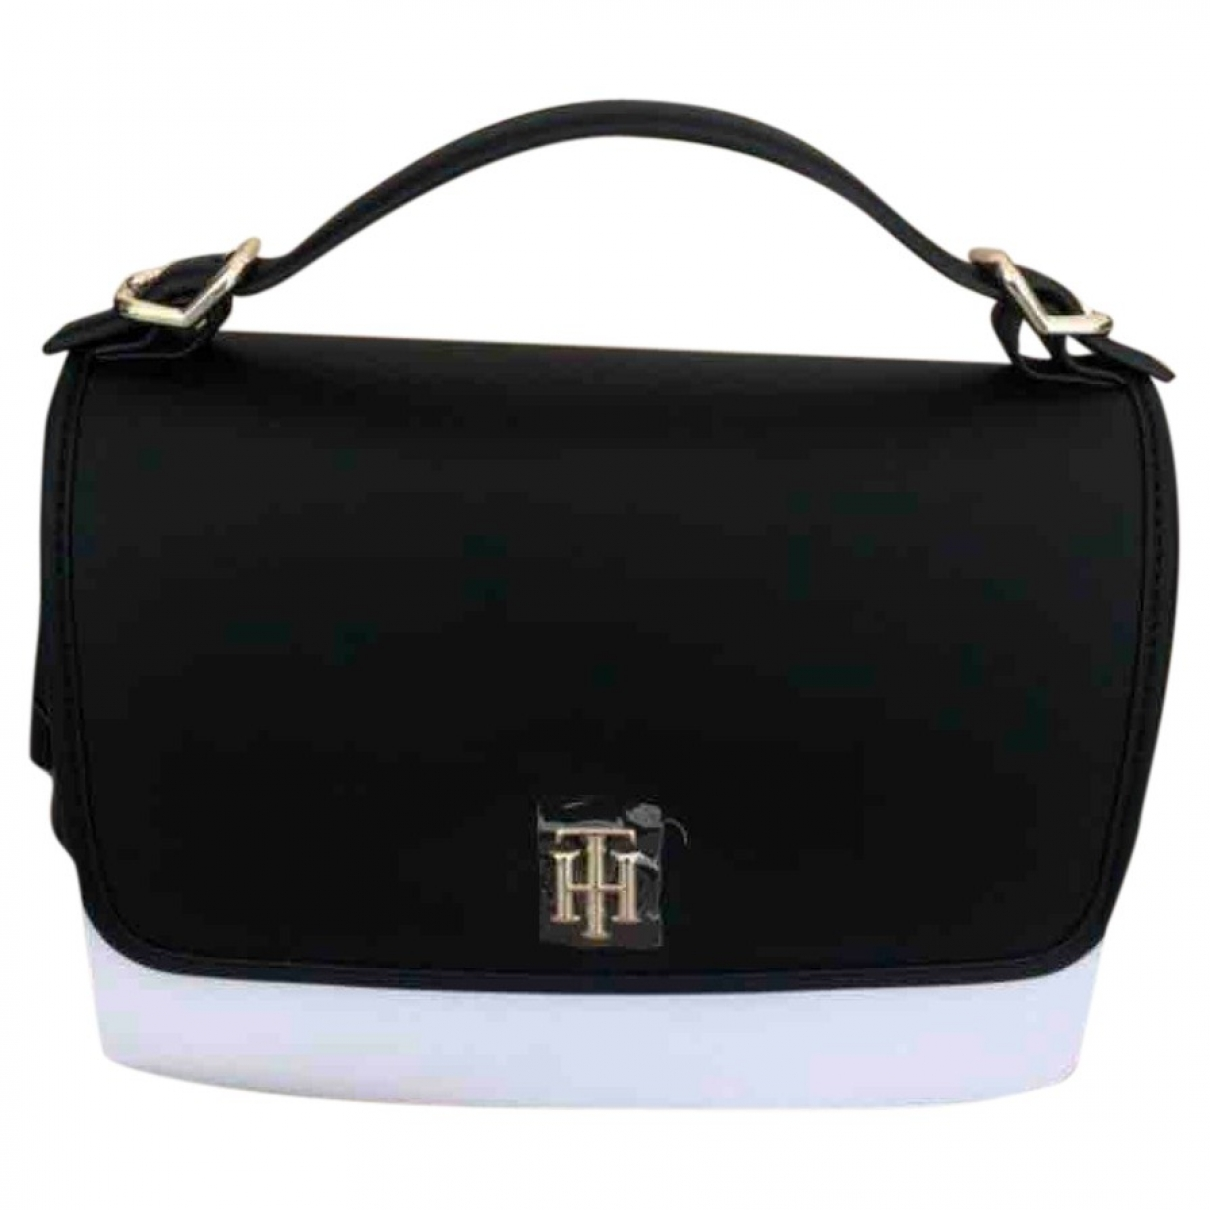 Tommy Hilfiger \N Black Leather handbag for Women \N